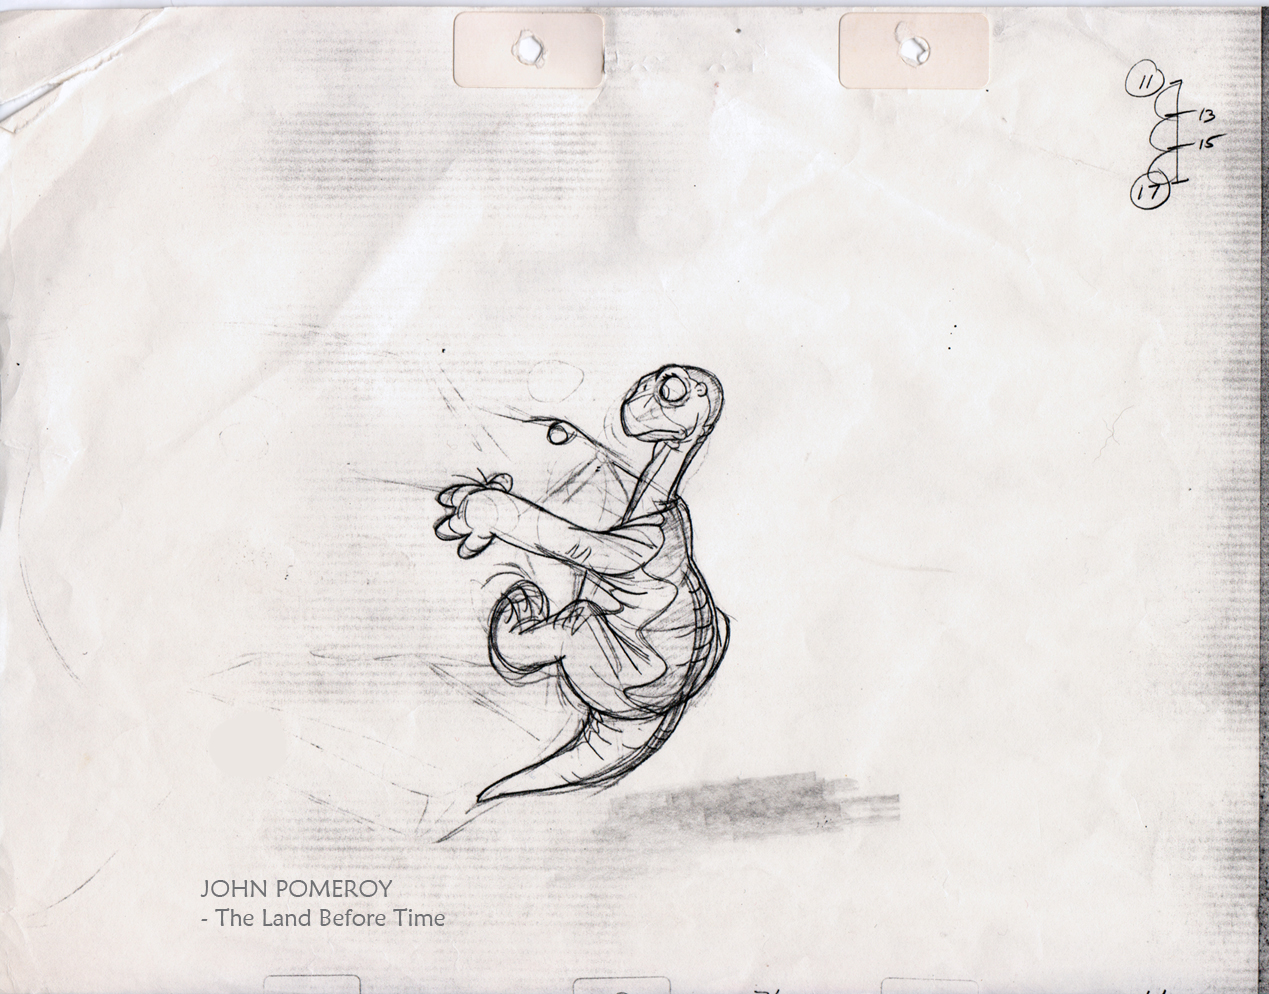 John_Pomeroy_Land_Before_Time_Animation_Drawing_002.jpg